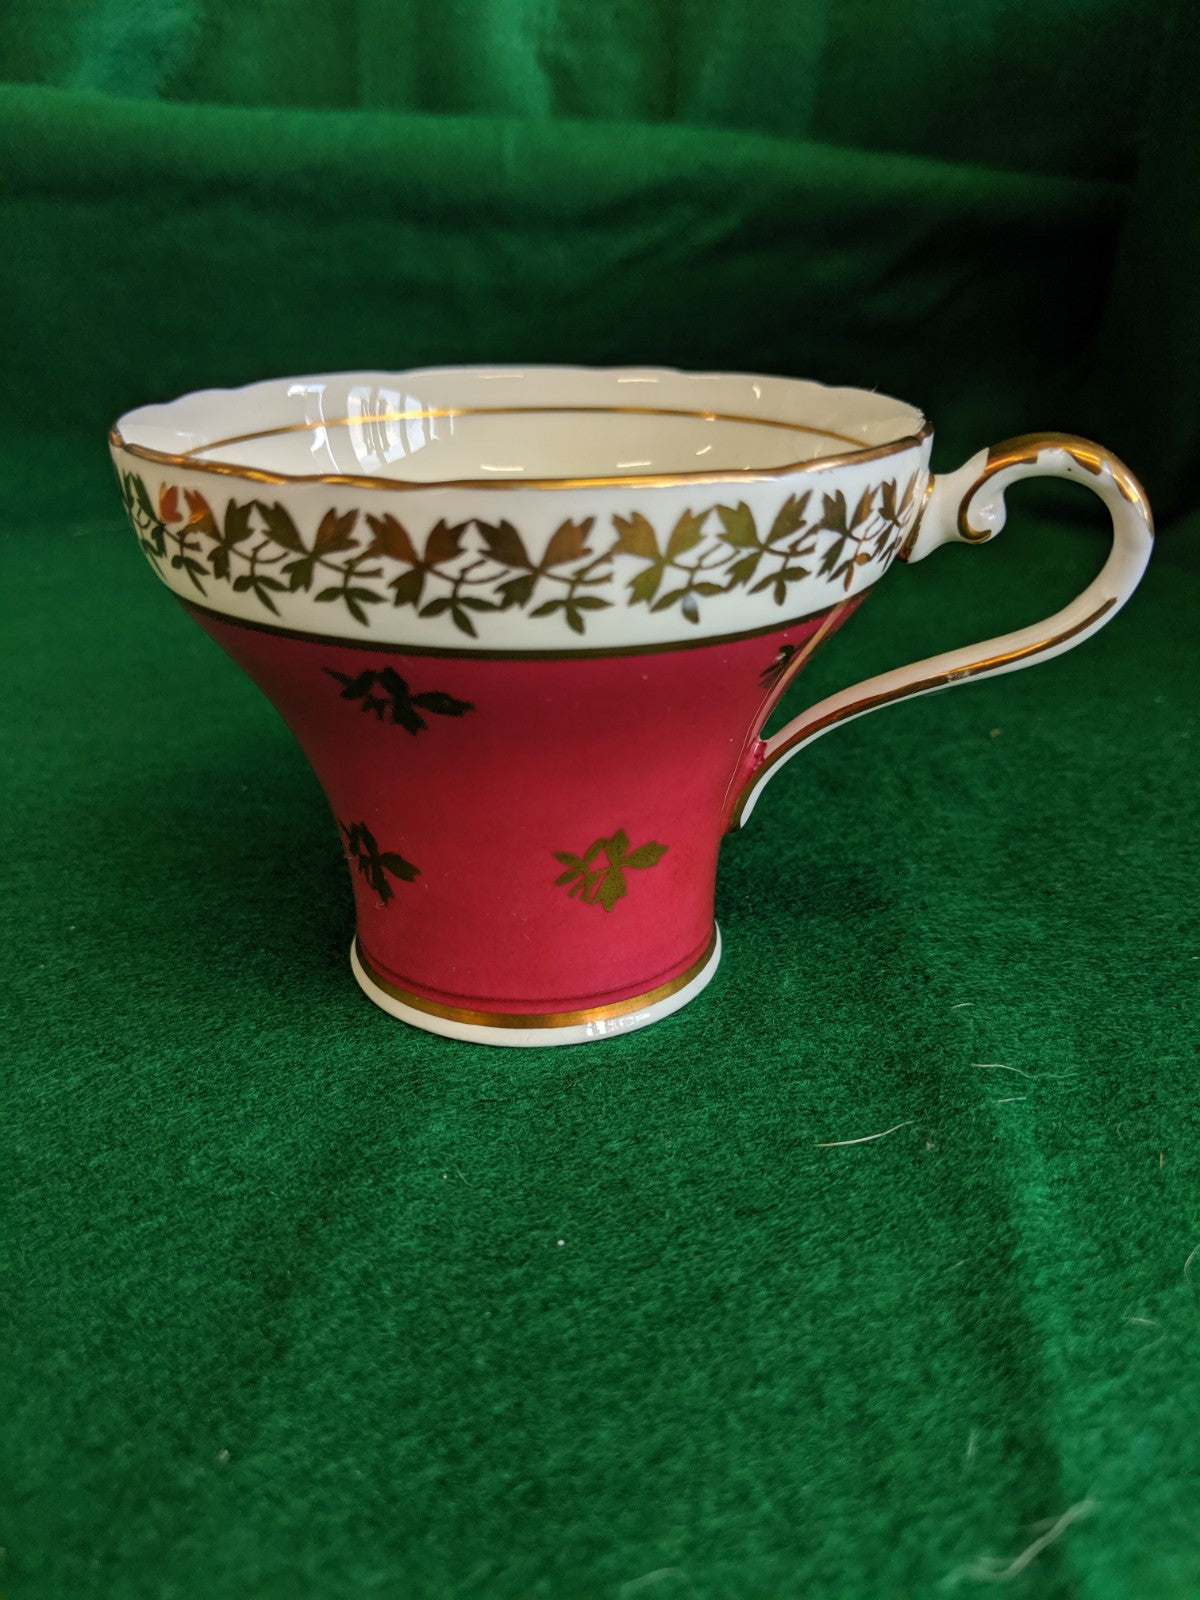 Vintage Aynsley tea cup and saucer, deep red w gold leaves